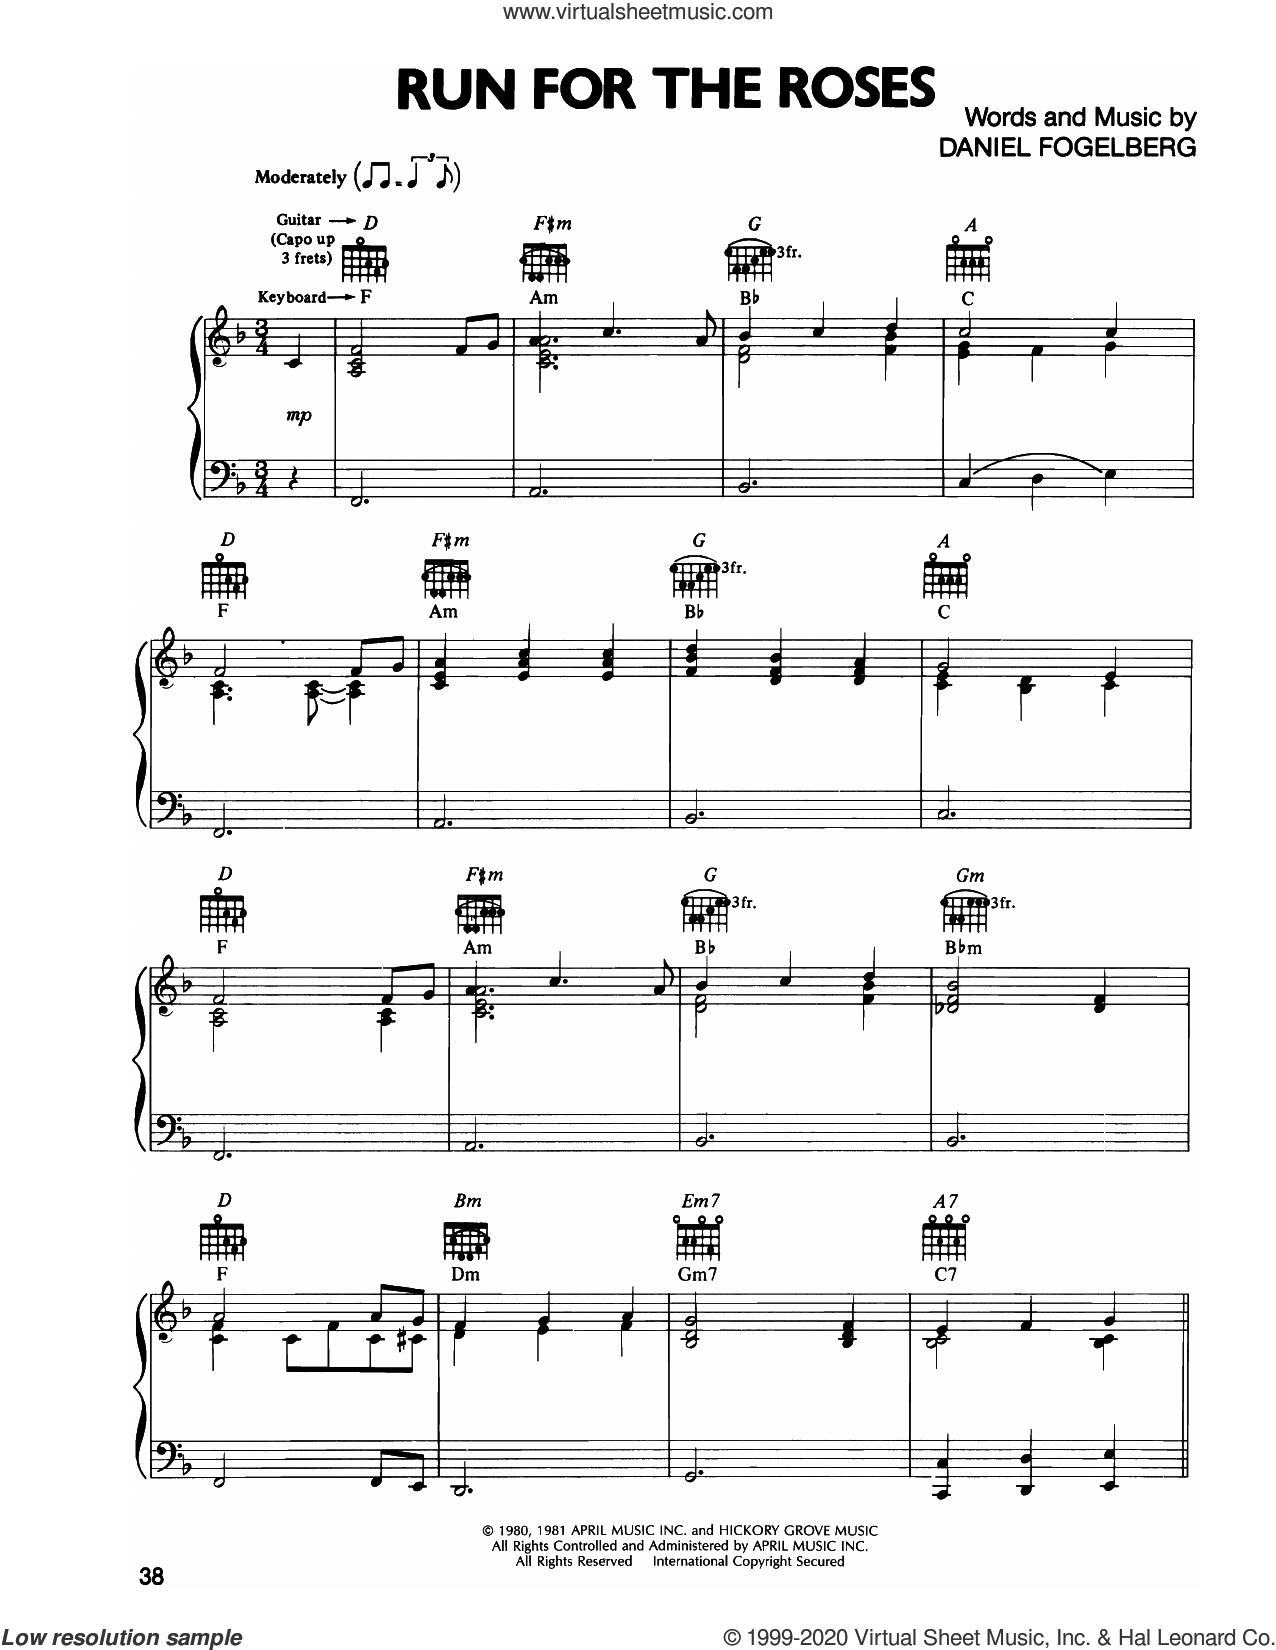 Run For The Roses sheet music for voice, piano or guitar by Dan Fogelberg, intermediate skill level